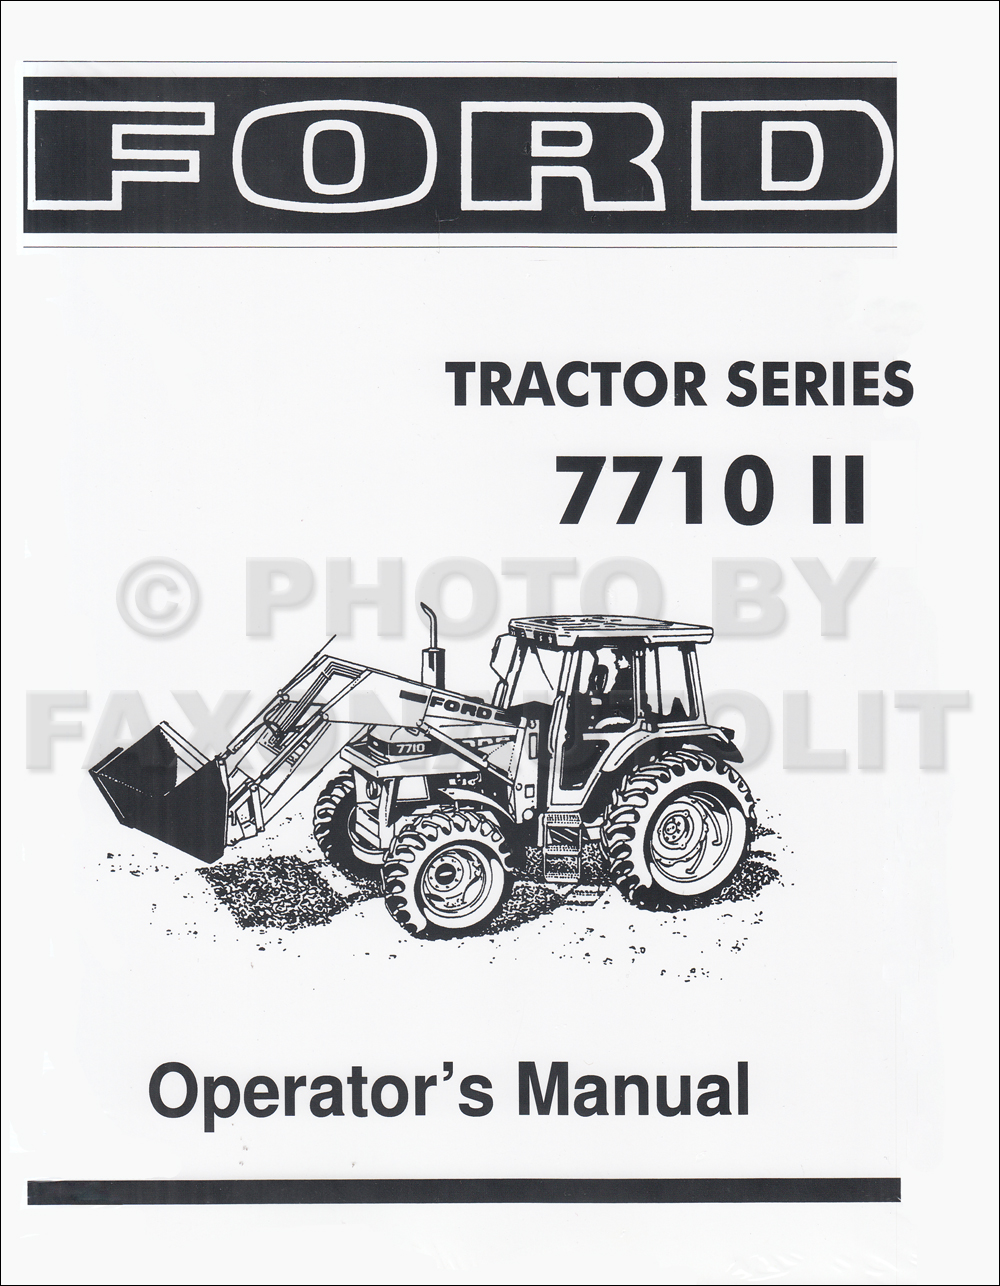 1985-1991 Ford 7710 II Tractor Owner's Manual Reprint